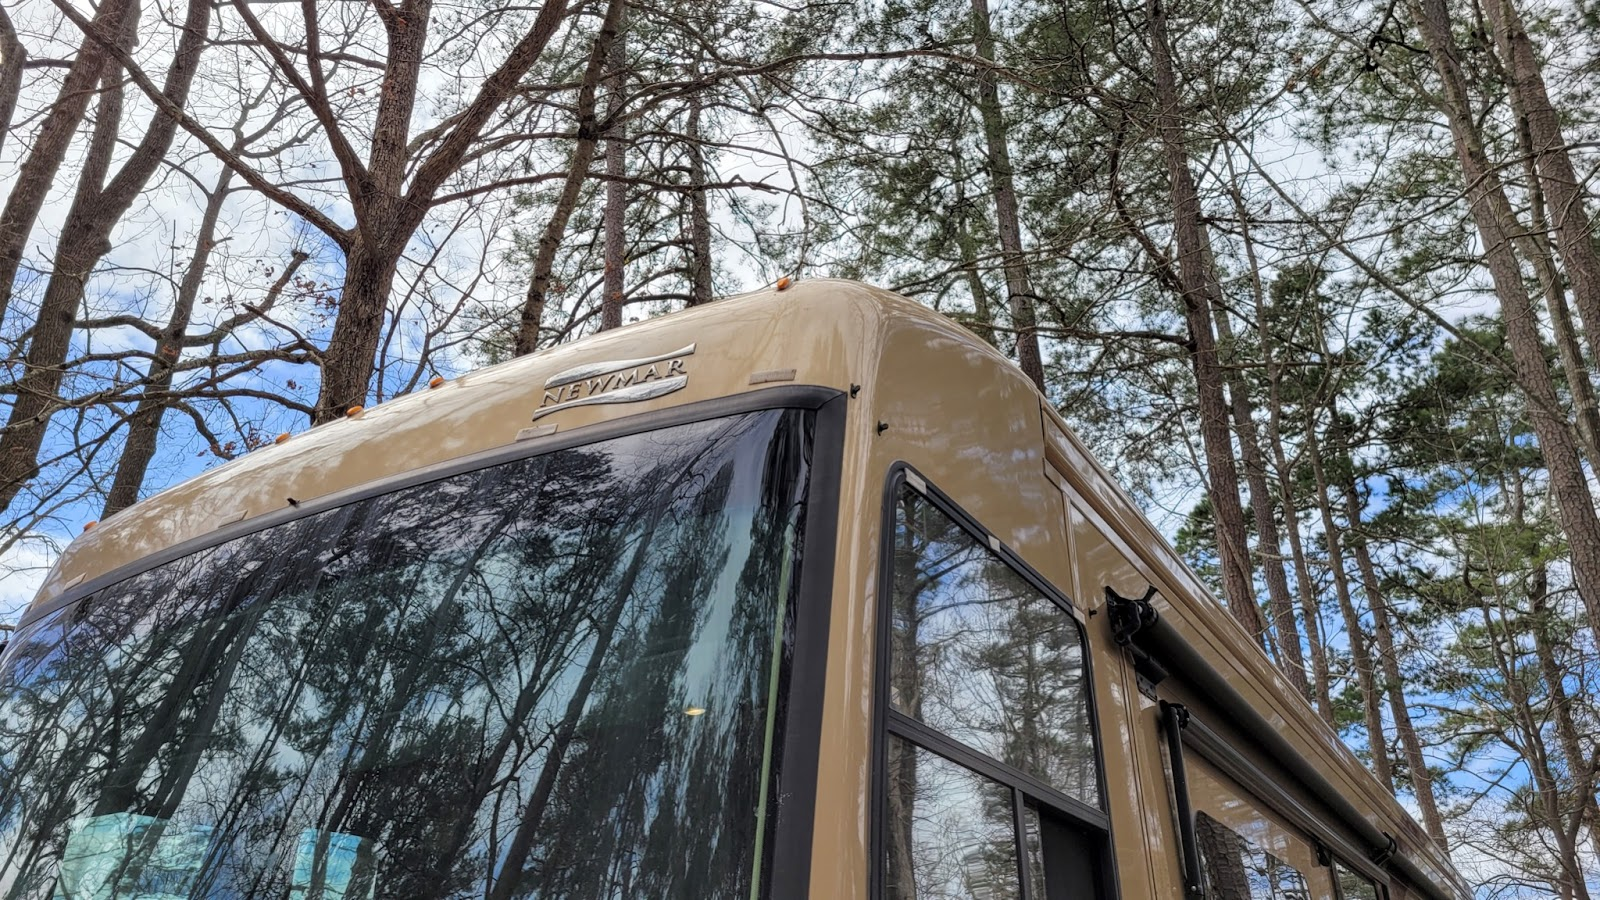 Top of a Class A RV parked in a woodsy campsite